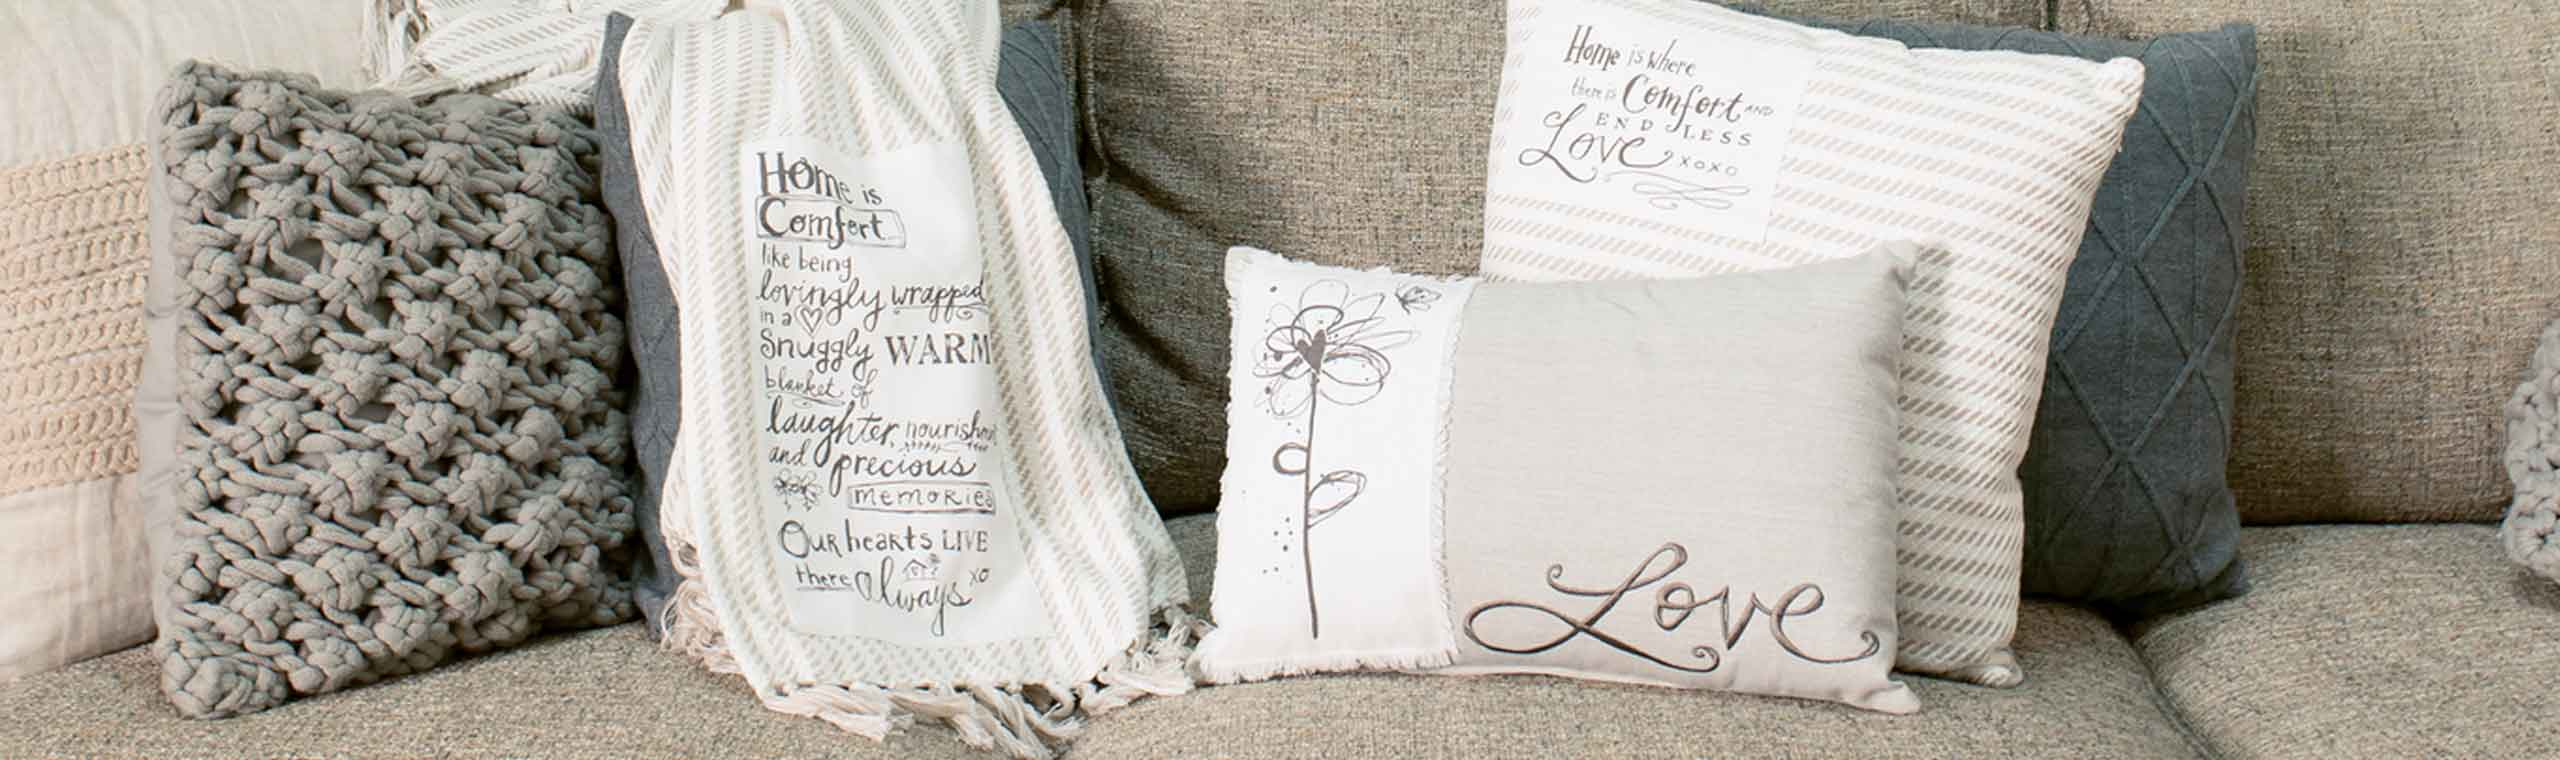 Poetic Thread pillows on a couch